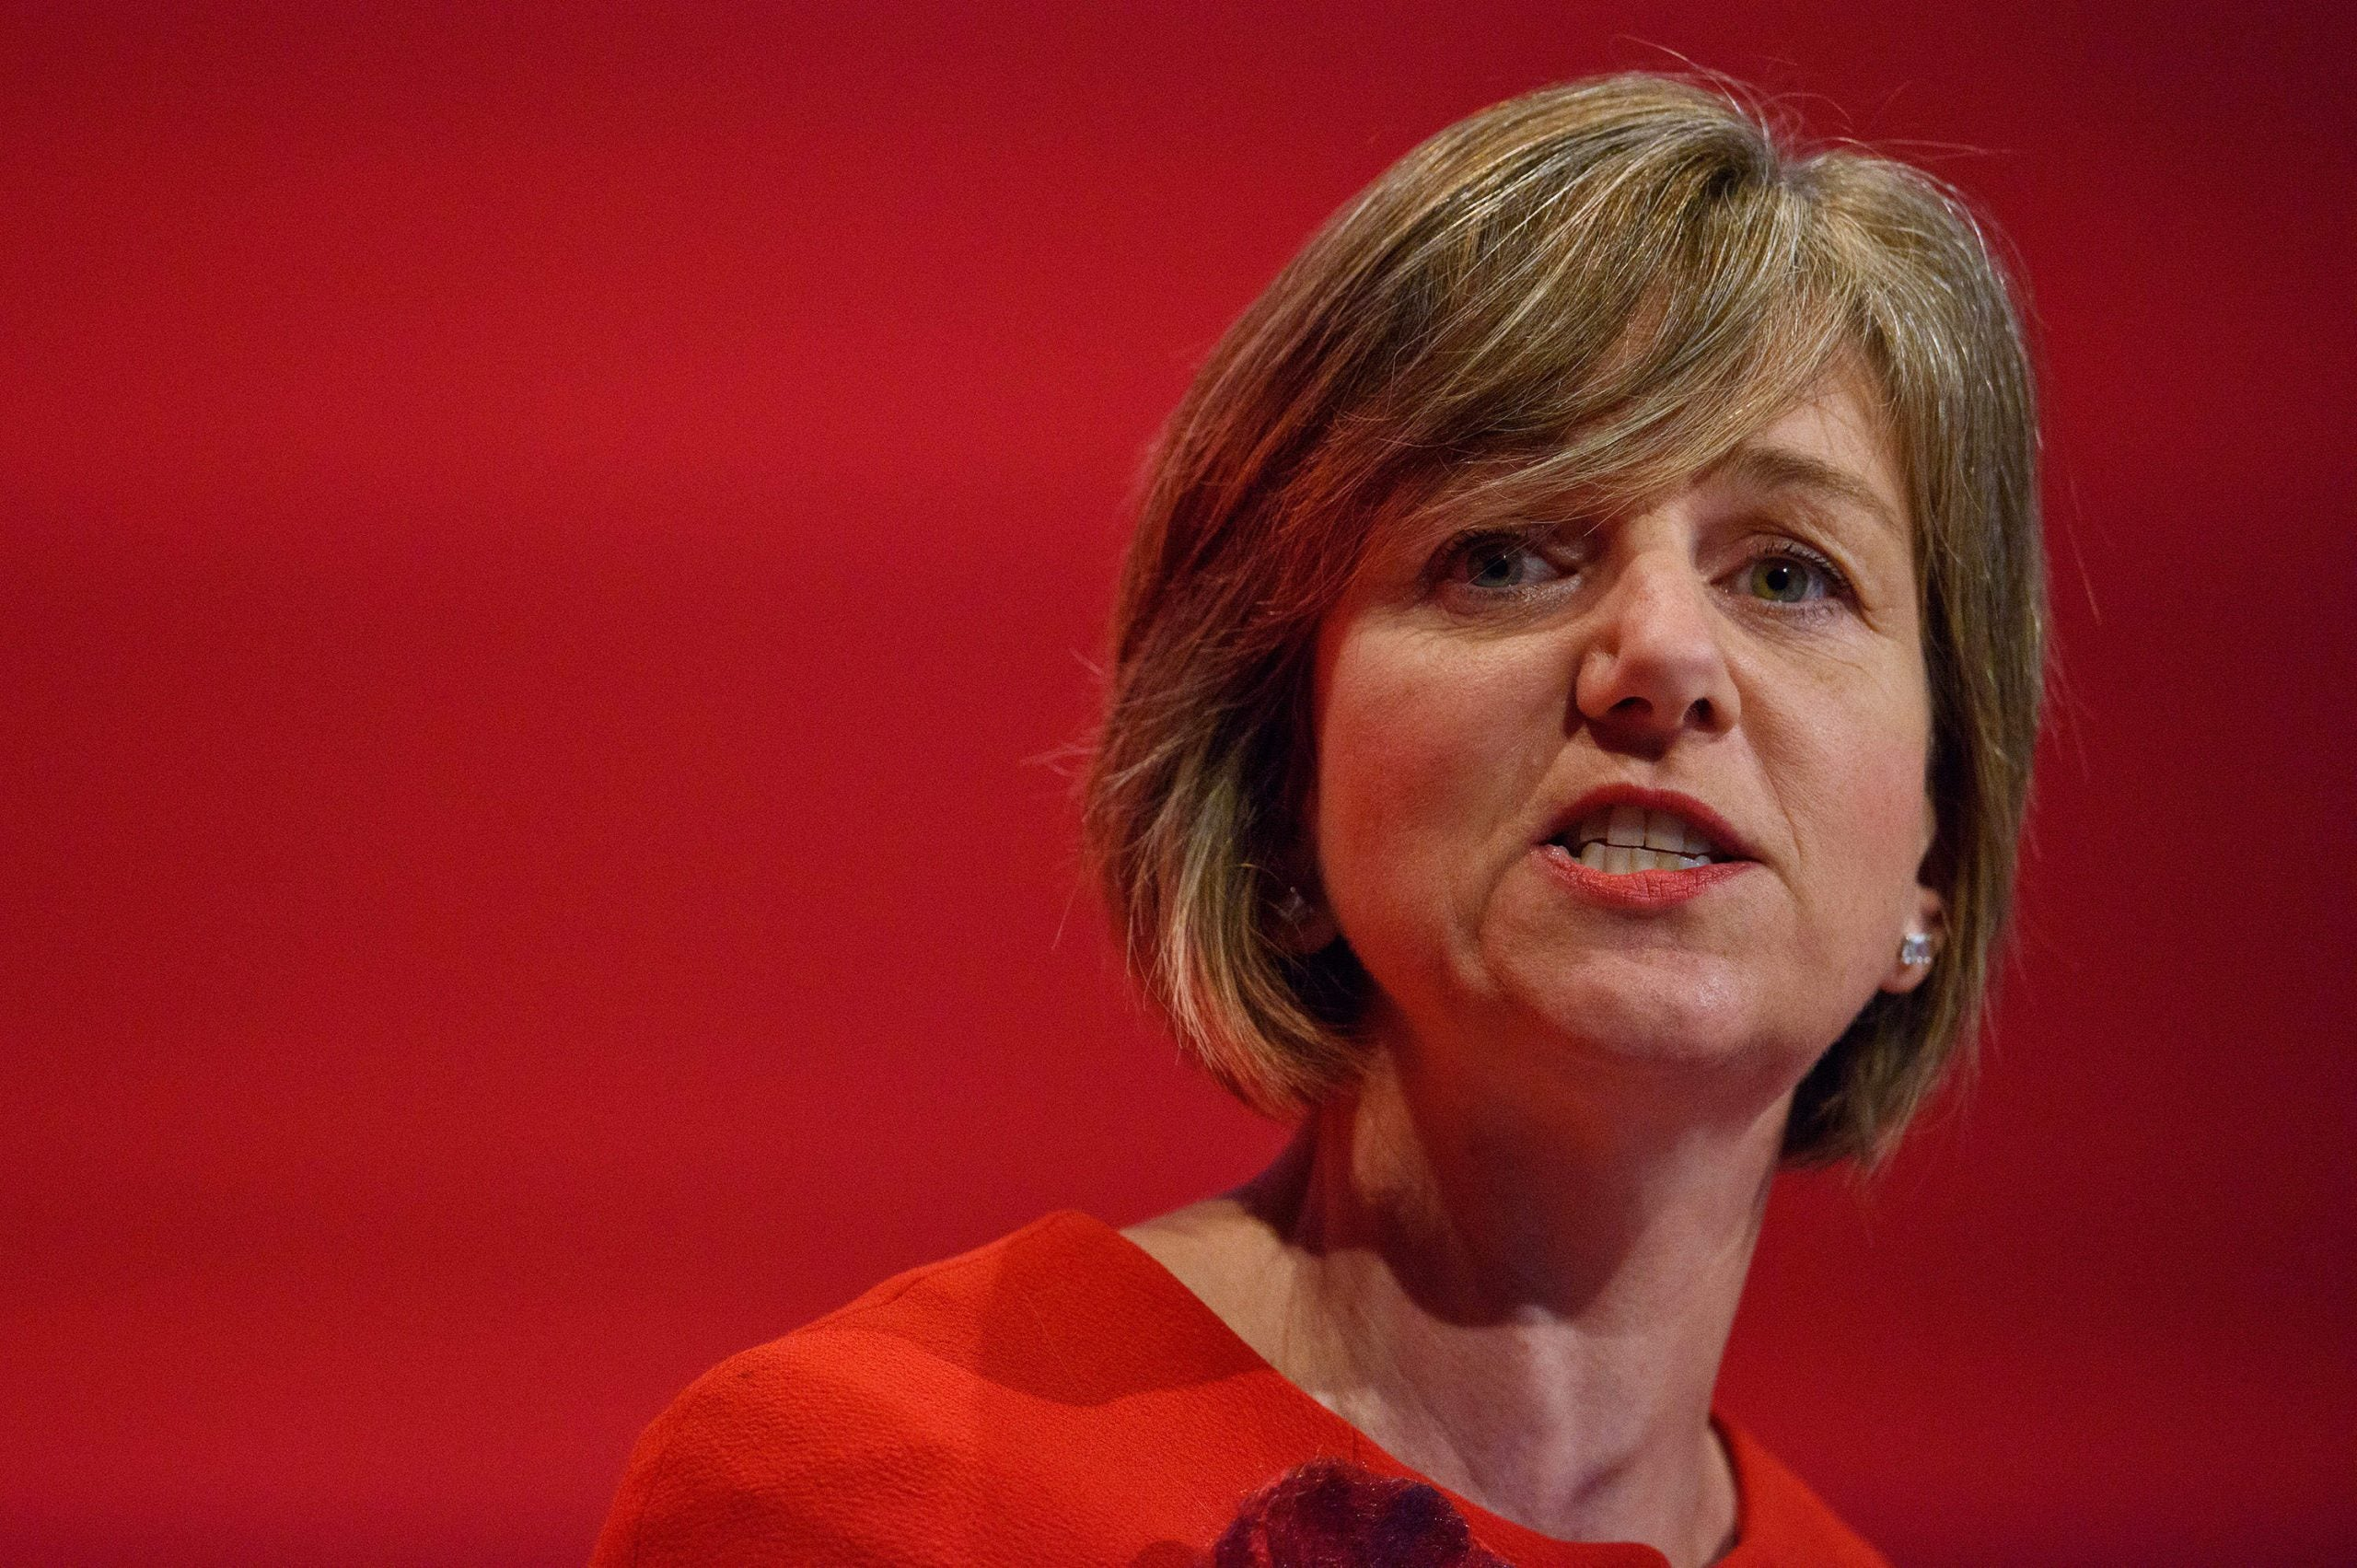 Lilian Greenwood MP: Jeremy Corbyn continually undermined me in the job I loved